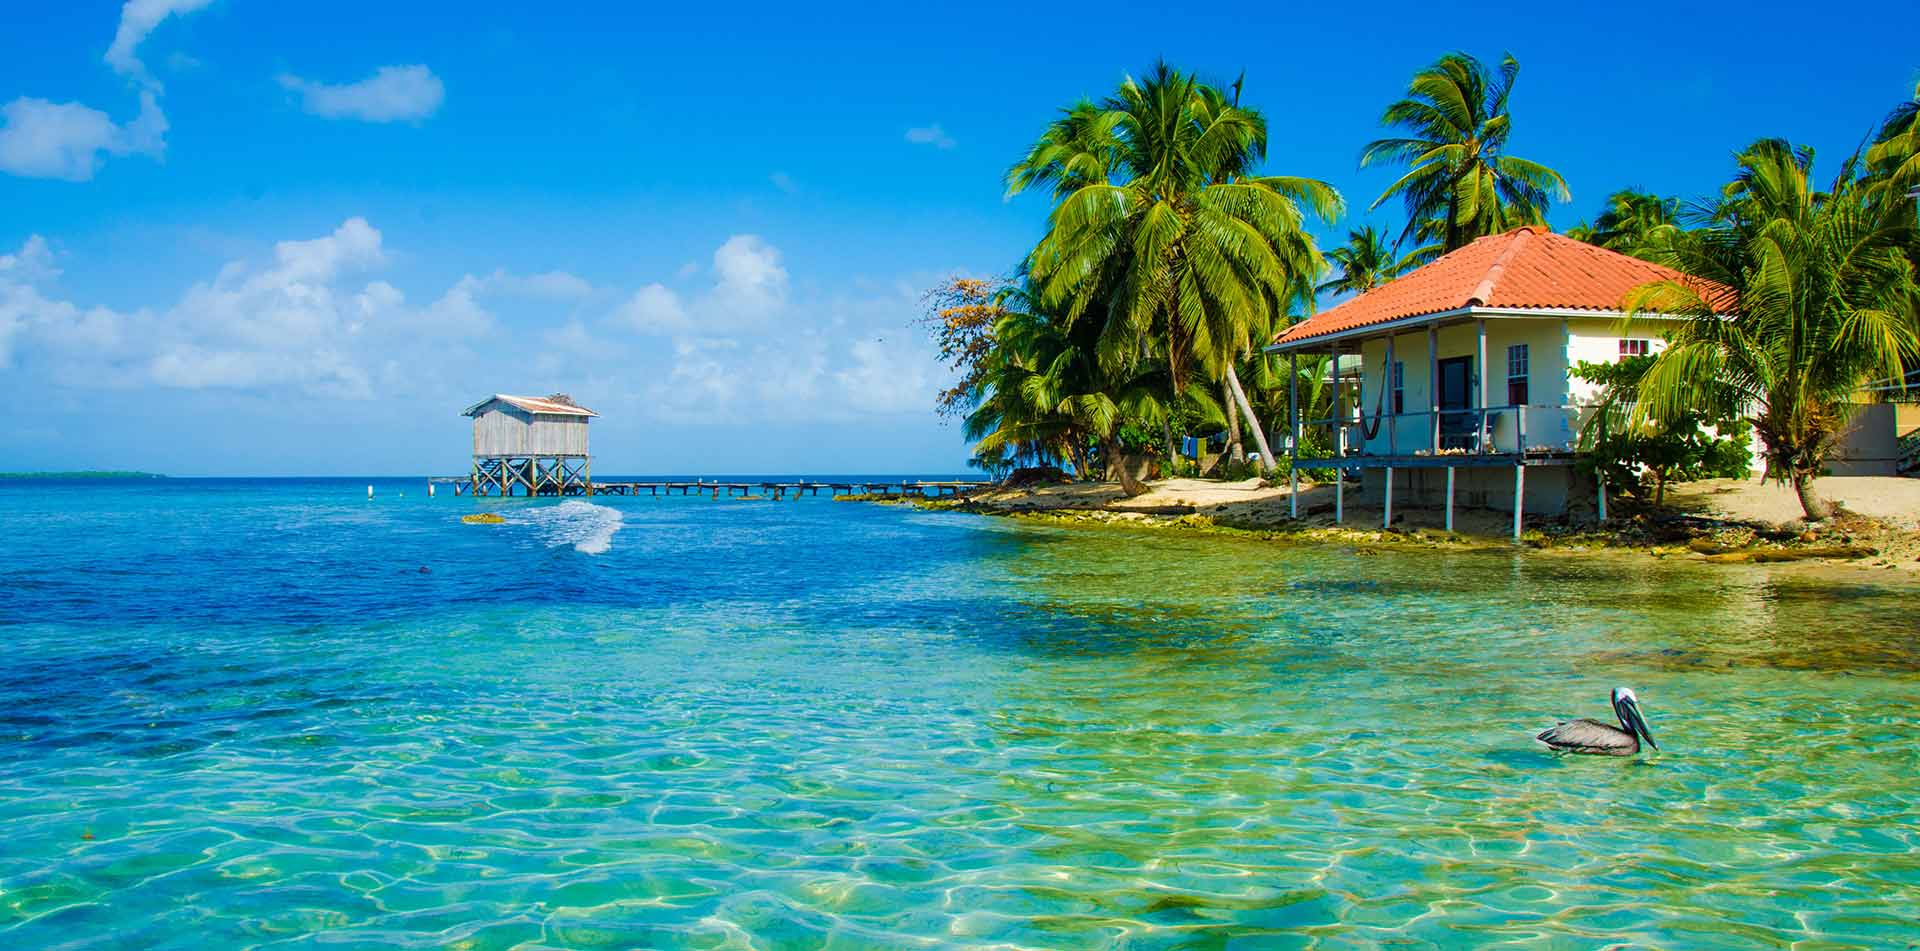 Central America Belize lush tropical island clear blue water beach bungalow scenic dock - luxury vacation destinations